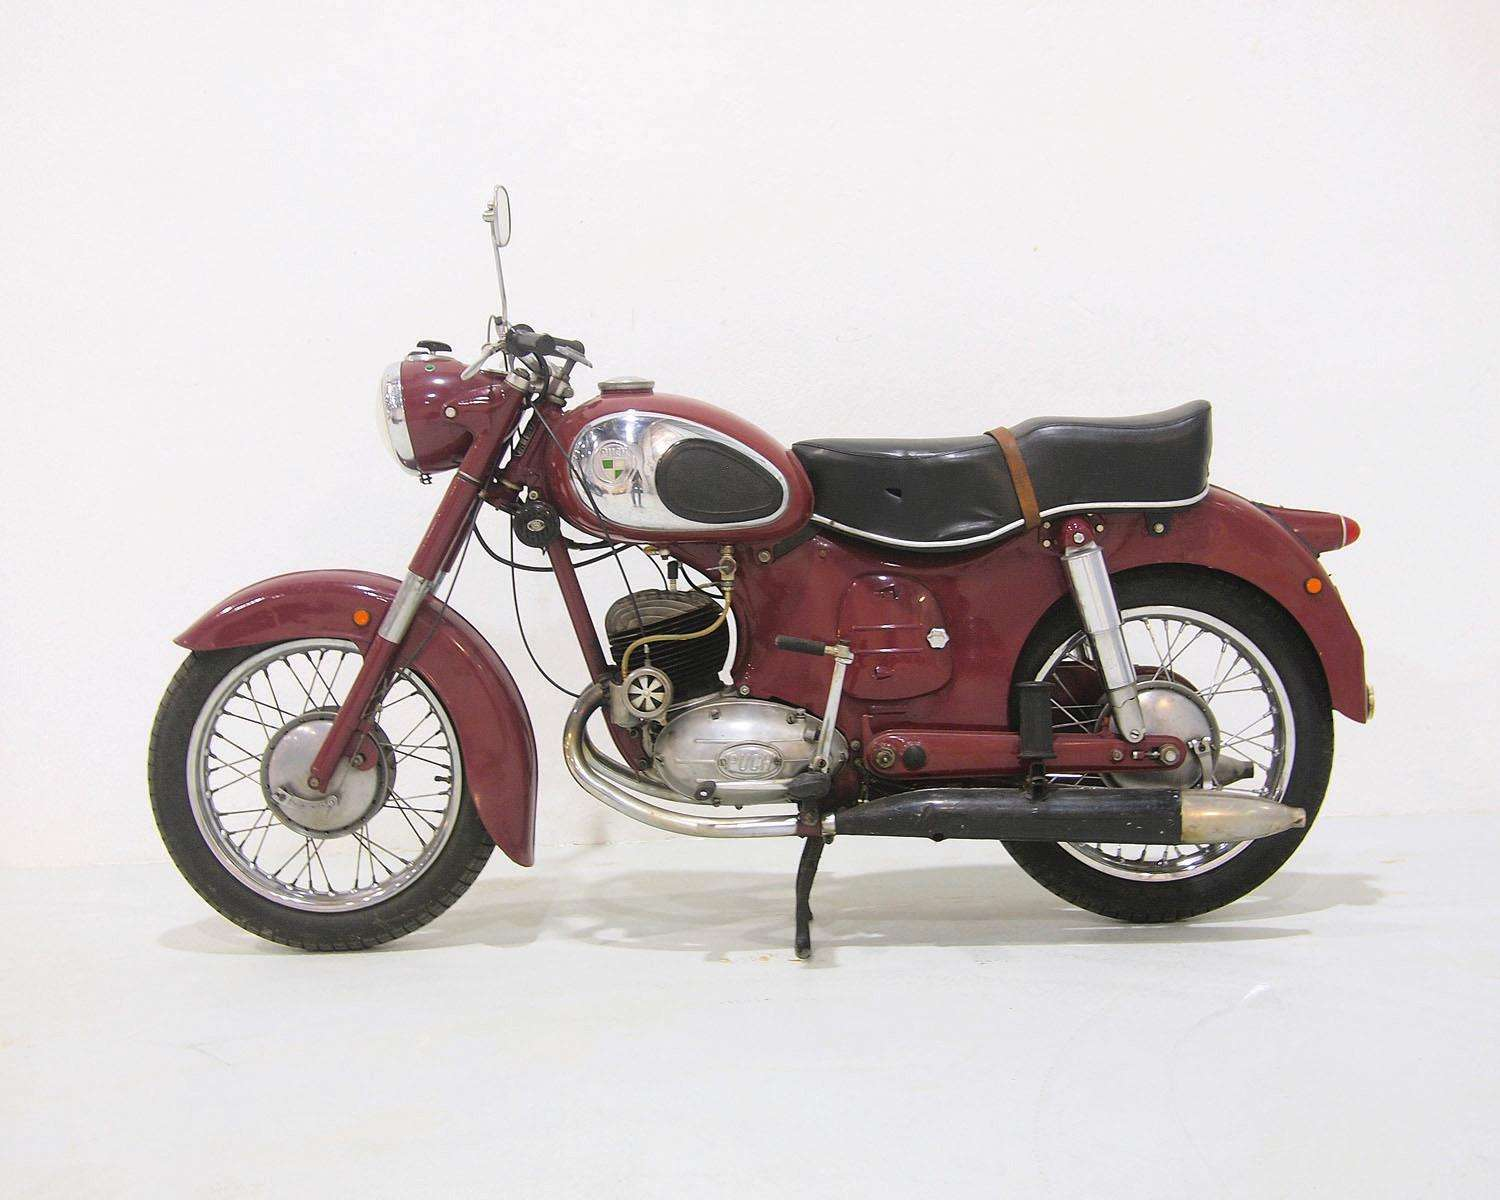 1956 Puch 125 SVS (no reserve) - Classic Cars 2016/06/18